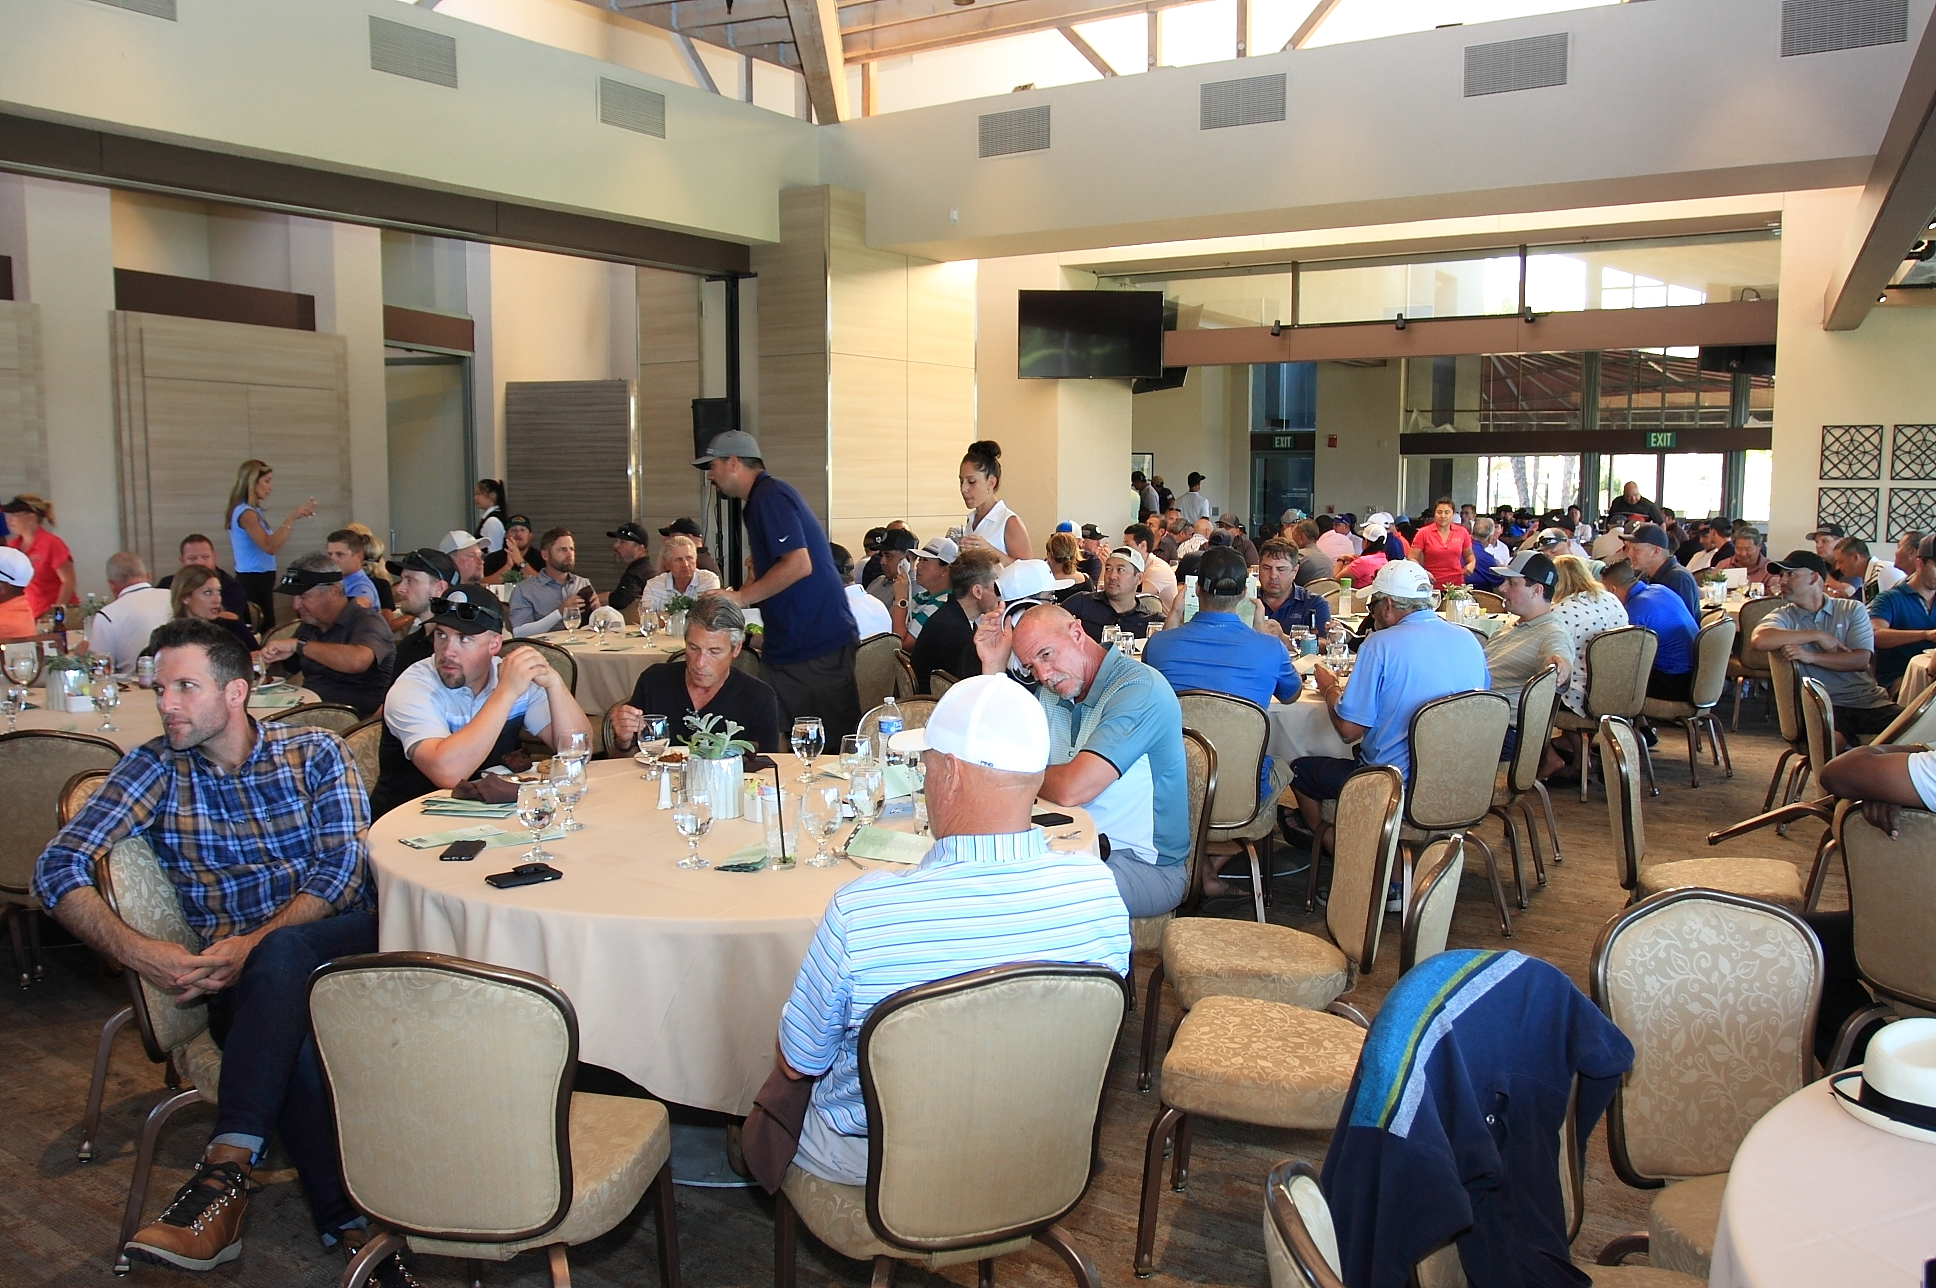 Golfers enjoying dinner after a long day out on the course.